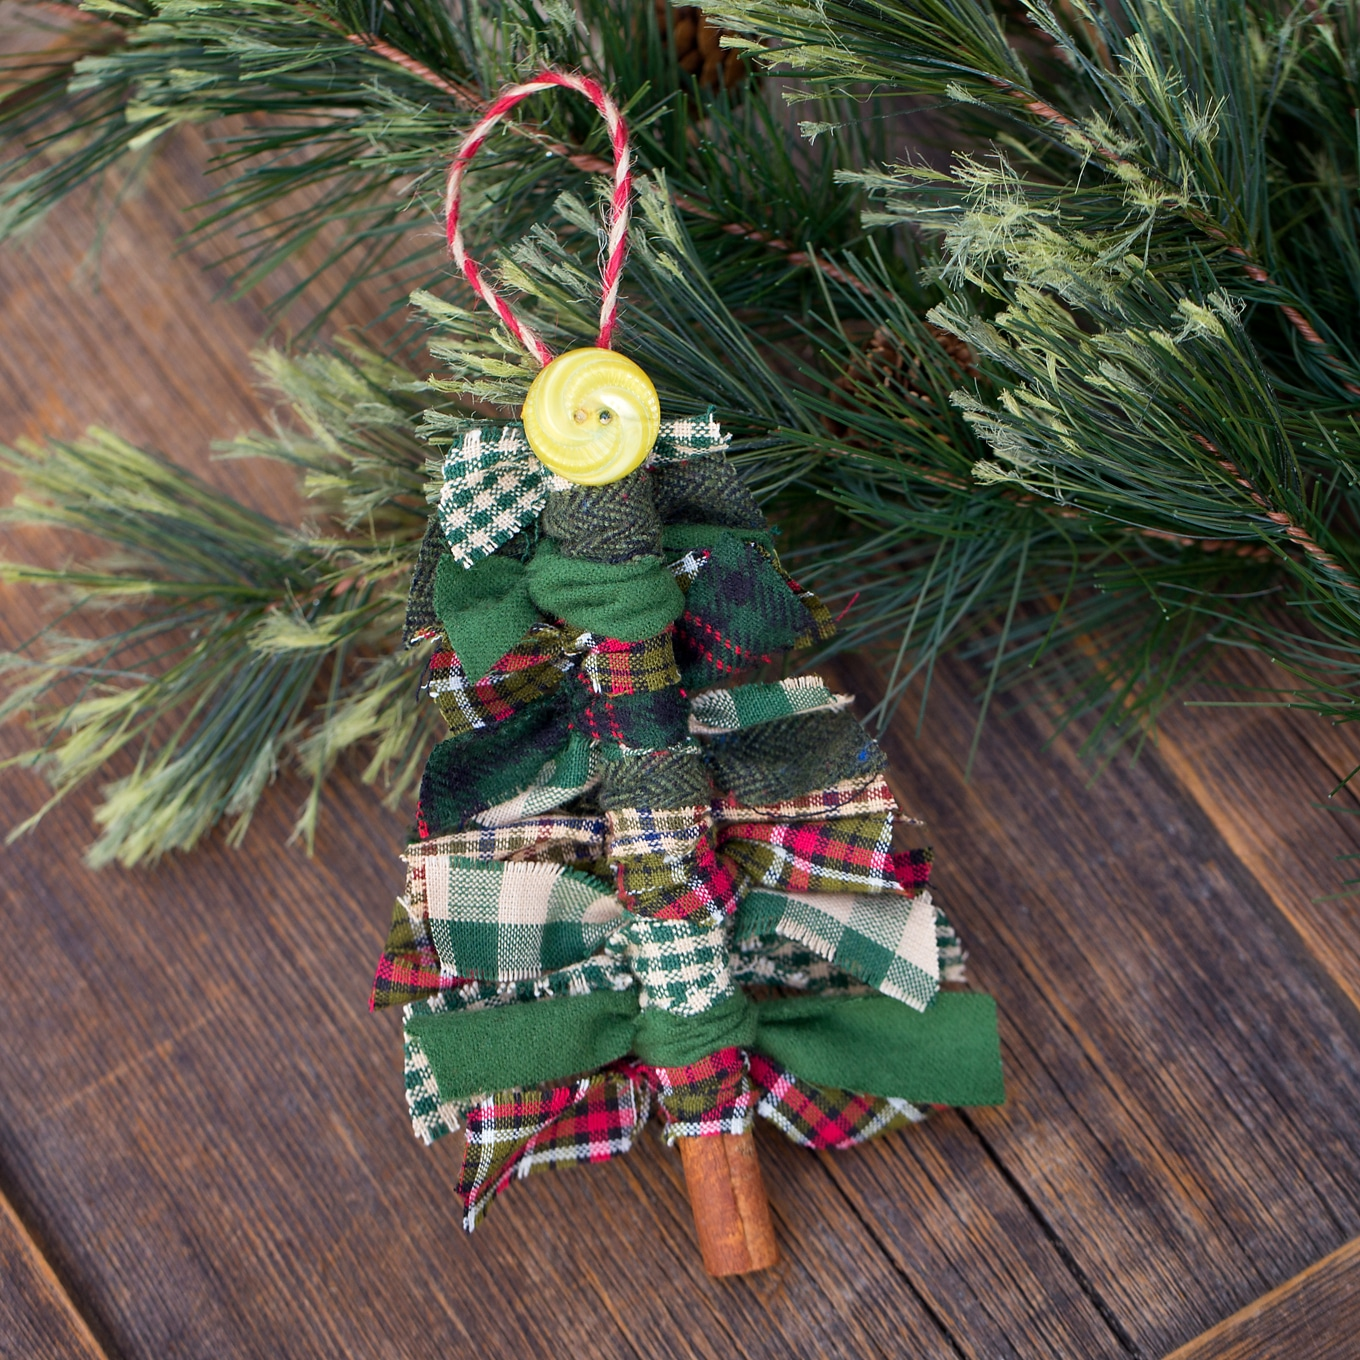 How To Make Christmas Decorations Youtube: How To Make Scrap Fabric Tree Ornaments